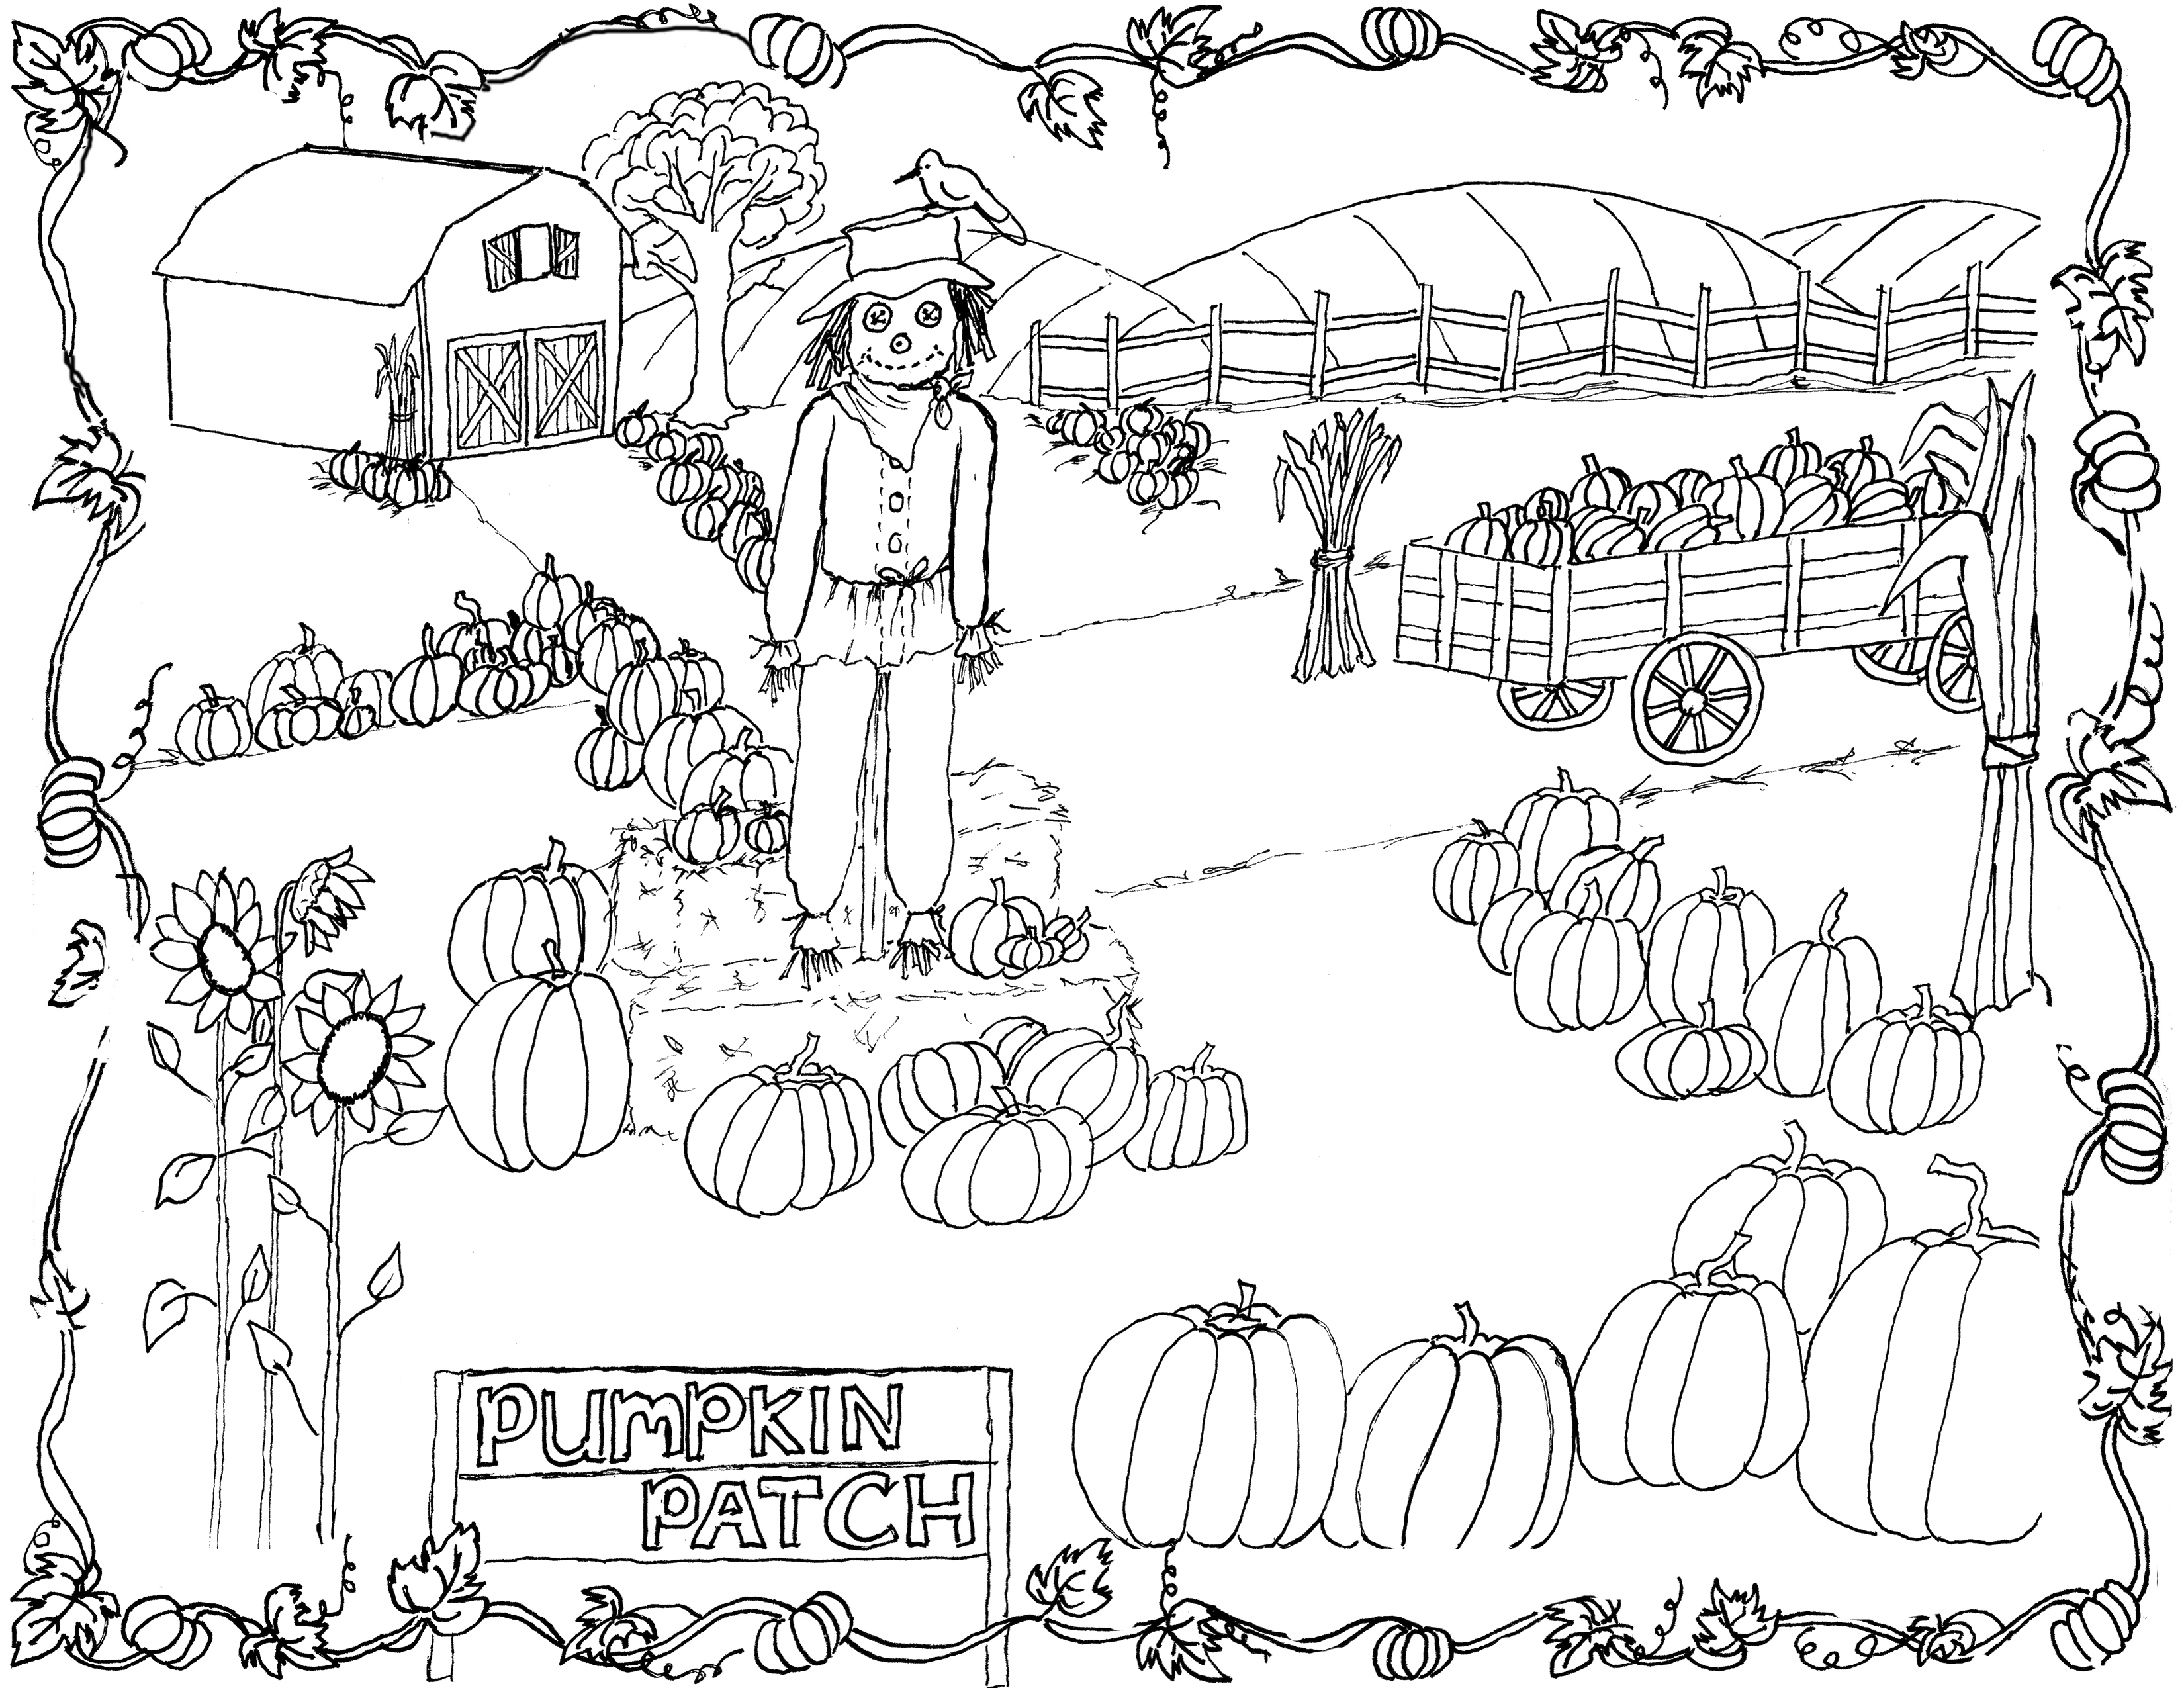 Pumpkin Patch Coloring Page Printable!